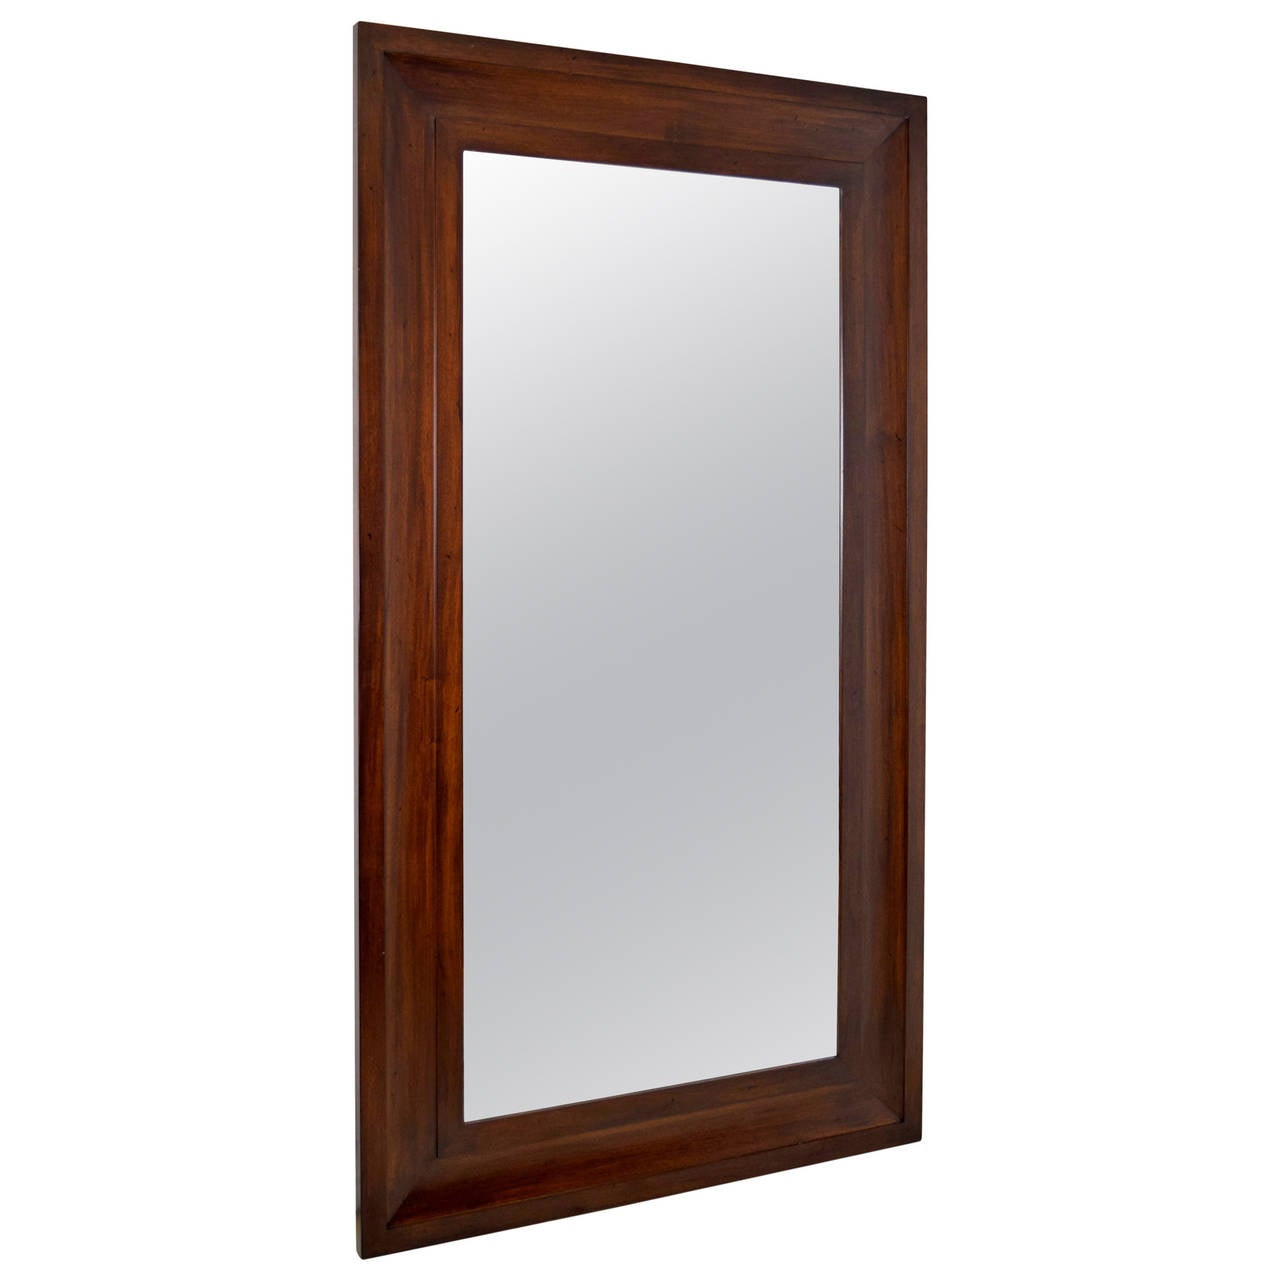 Custom very large mahogany frame wall mirror at 1stdibs for Large framed mirrors for walls